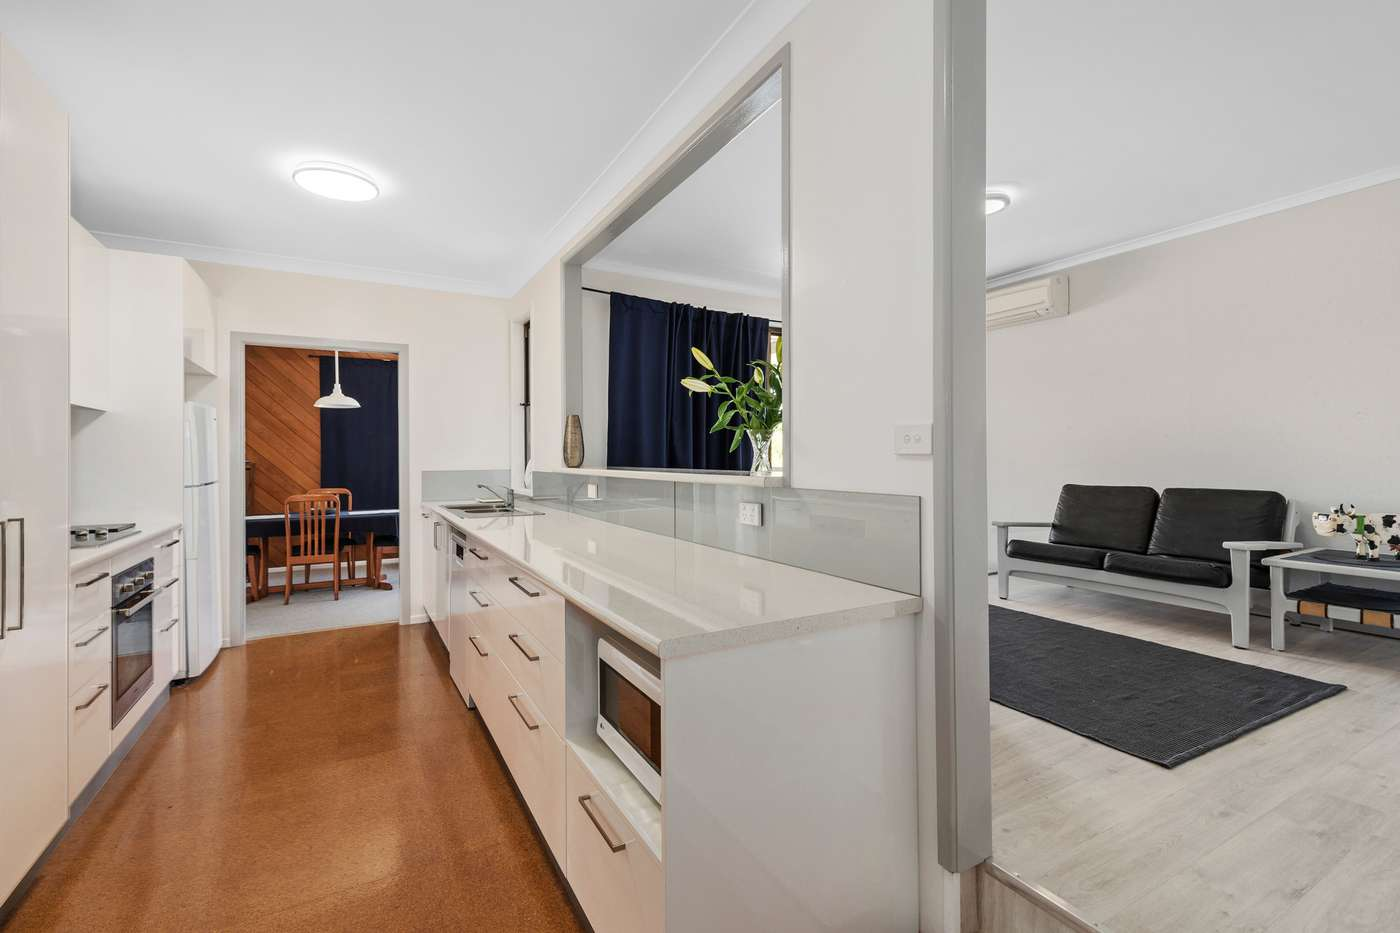 Main view of Homely house listing, 4 Lloyd Close, Coffs Harbour, NSW 2450